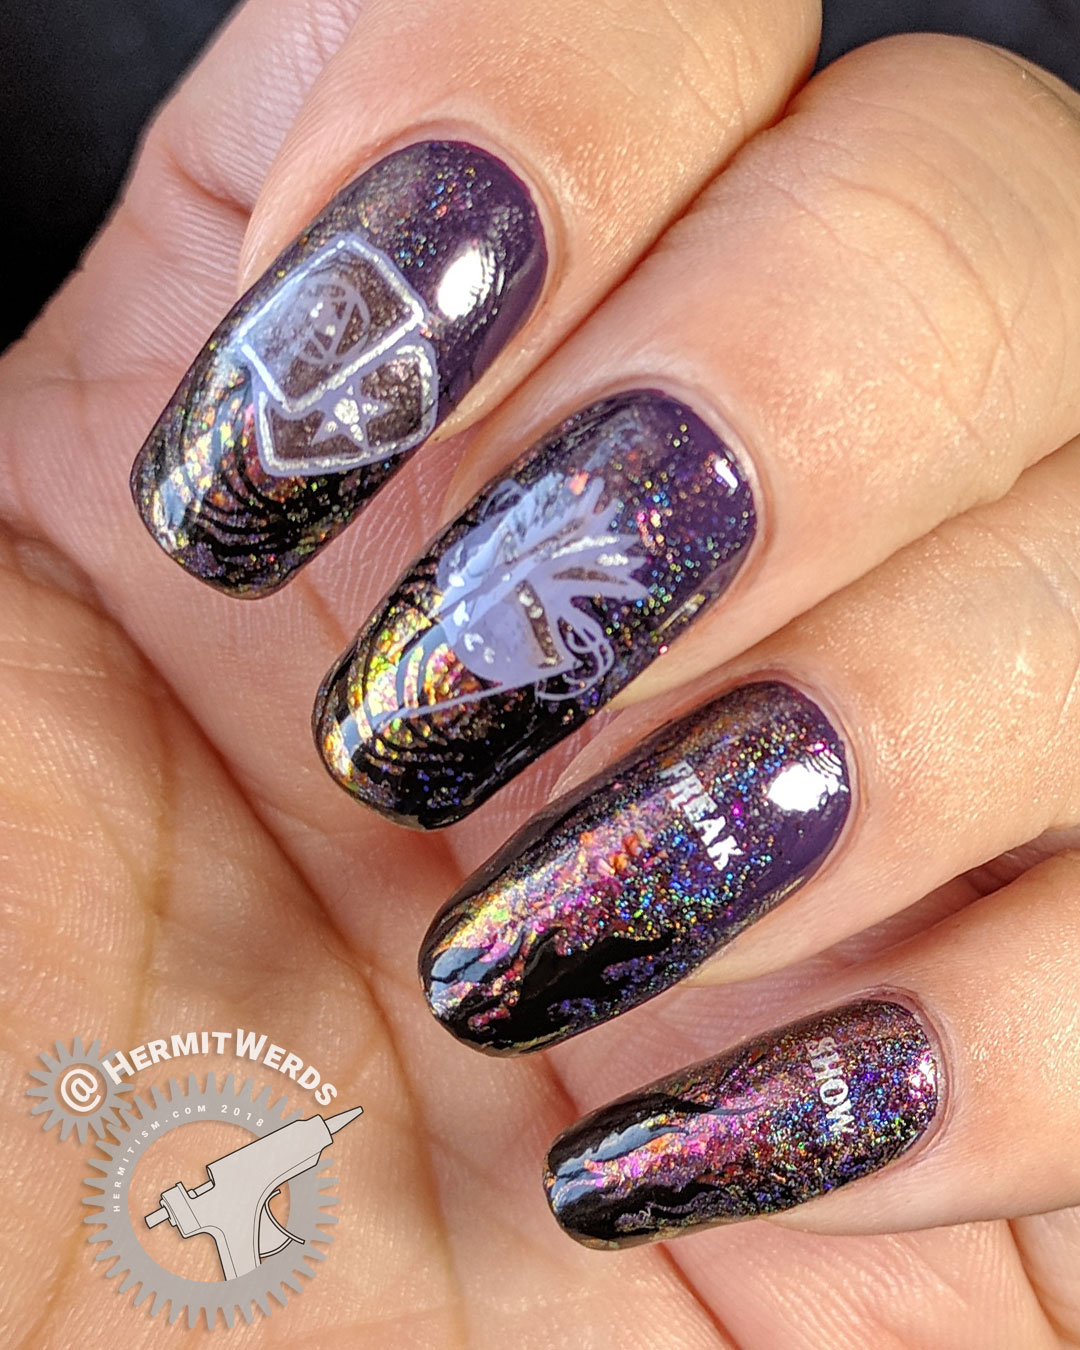 Daughter of a Burning City - Hermit Werds - chameleon flakies on a dark purple background with a circus/freak show theme